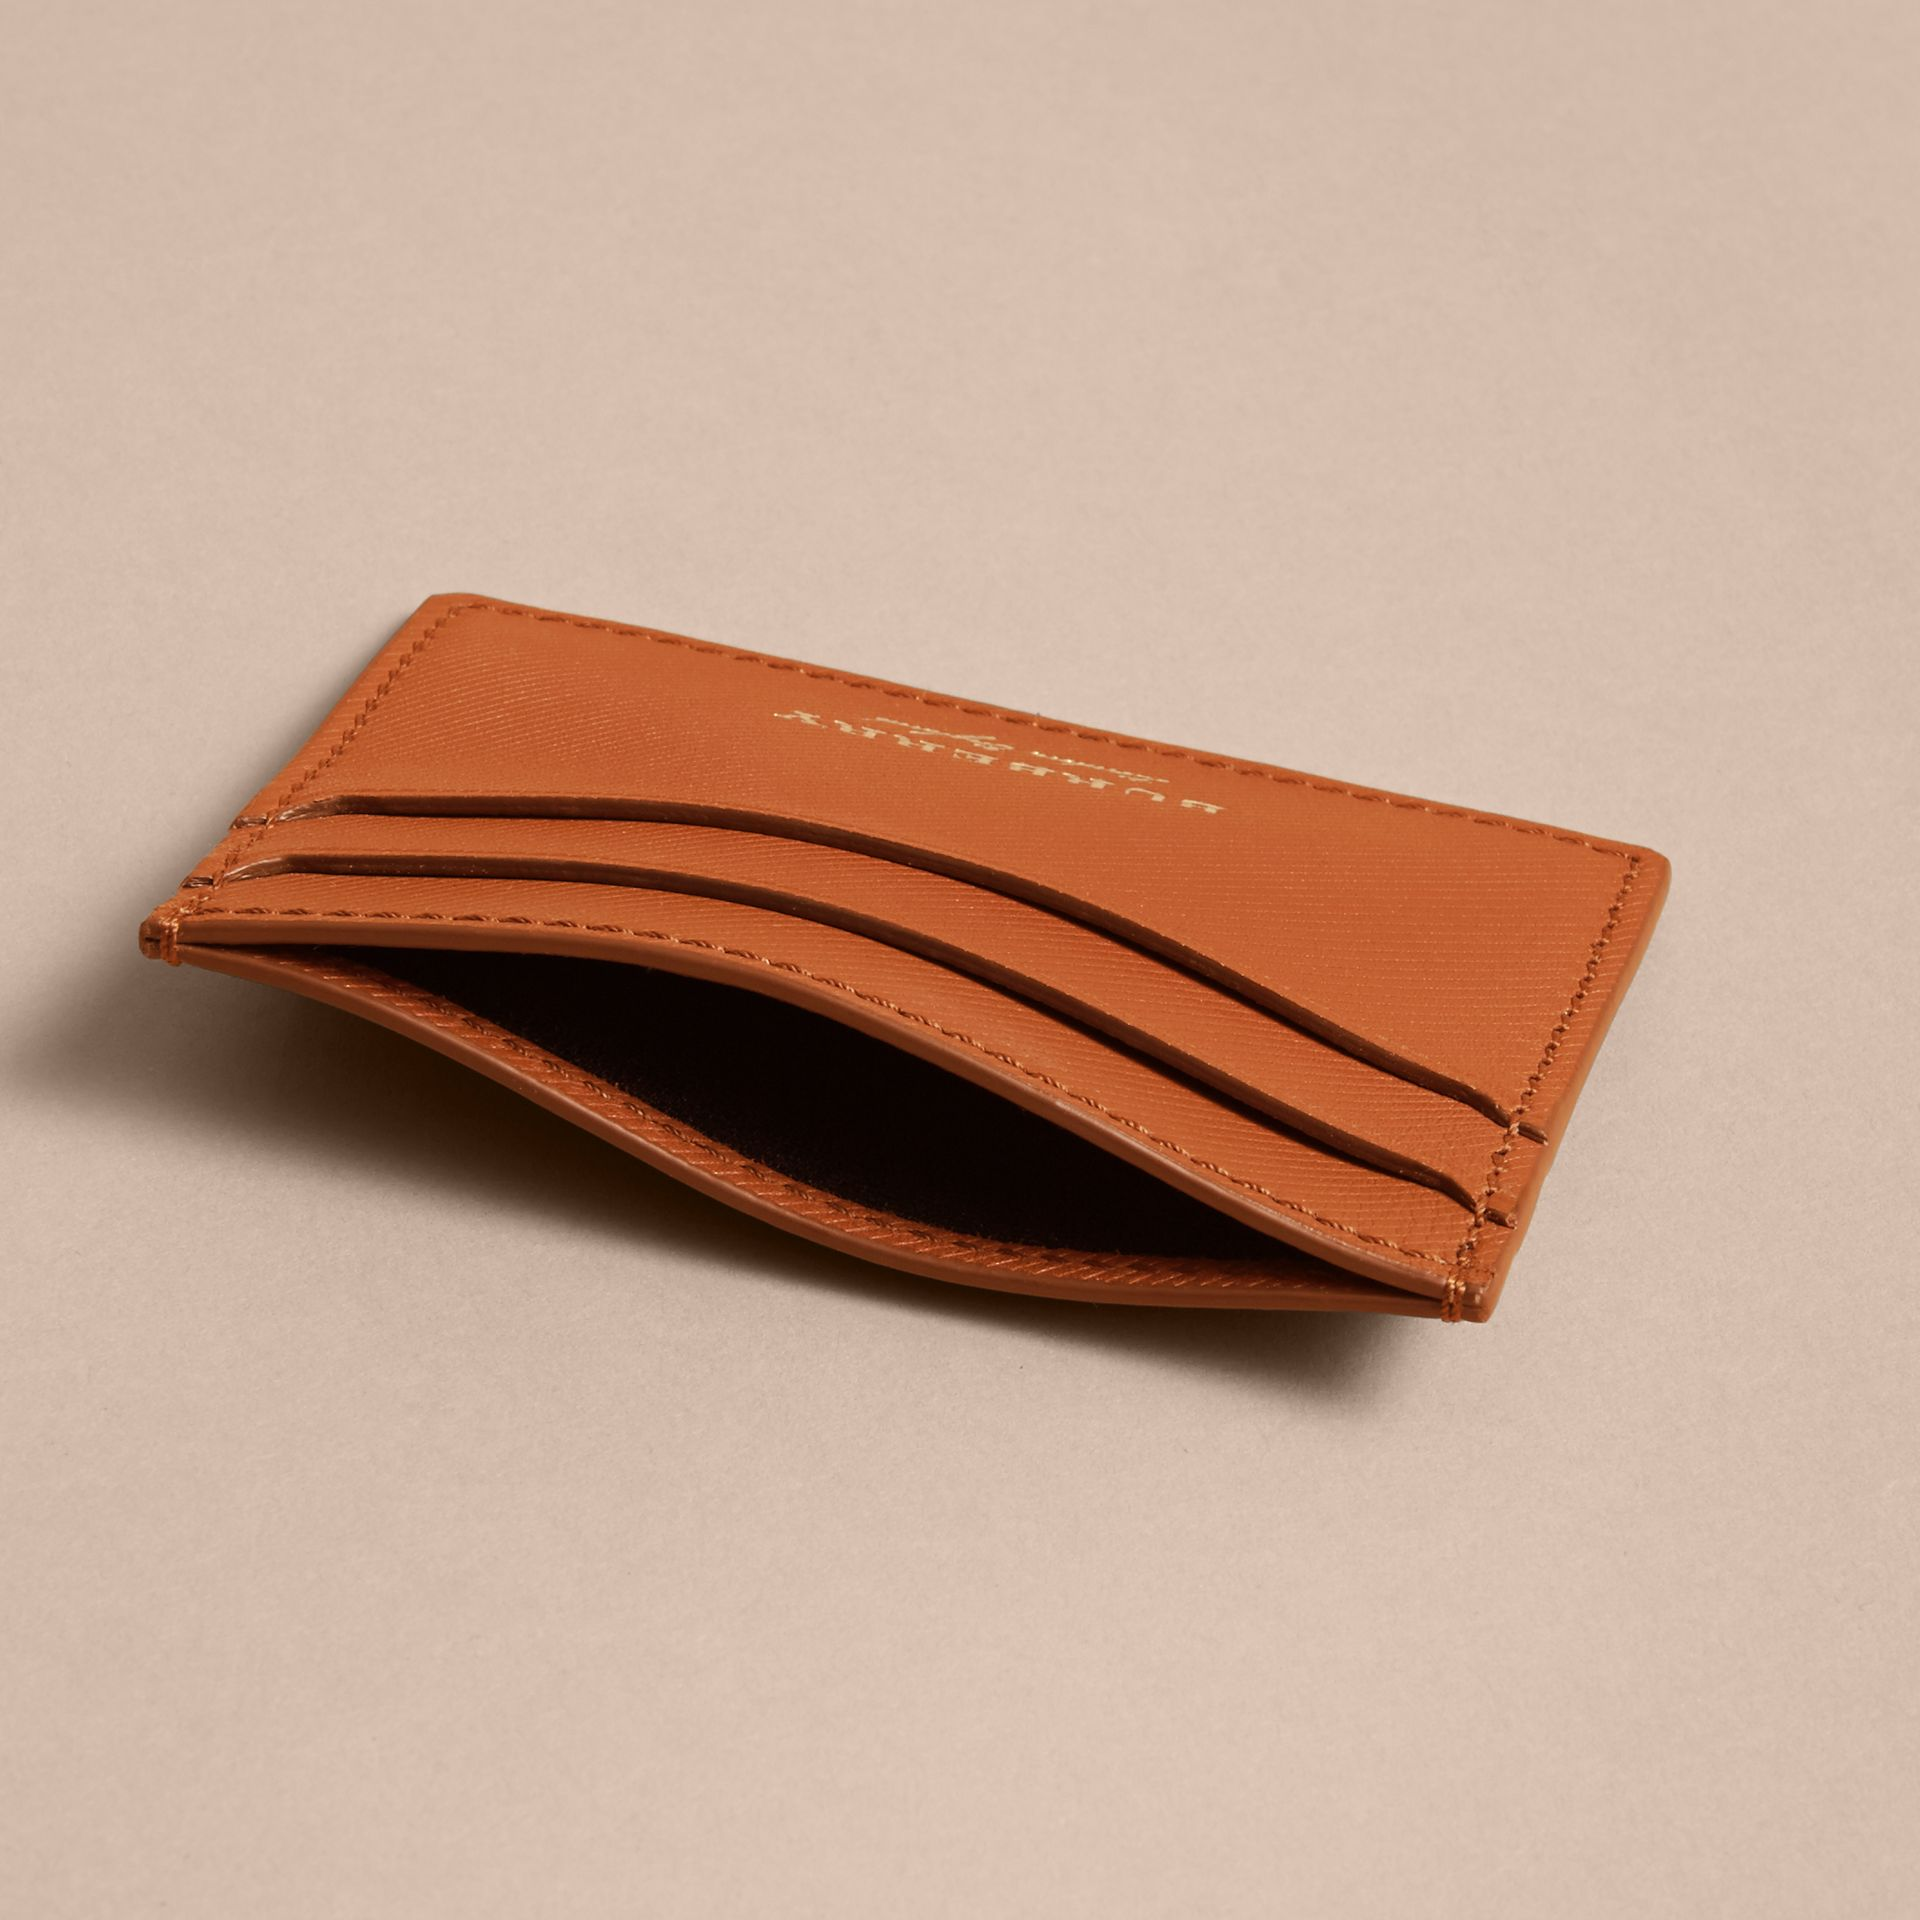 Trench Leather Card Case in Tan - Men | Burberry United Kingdom - gallery image 5